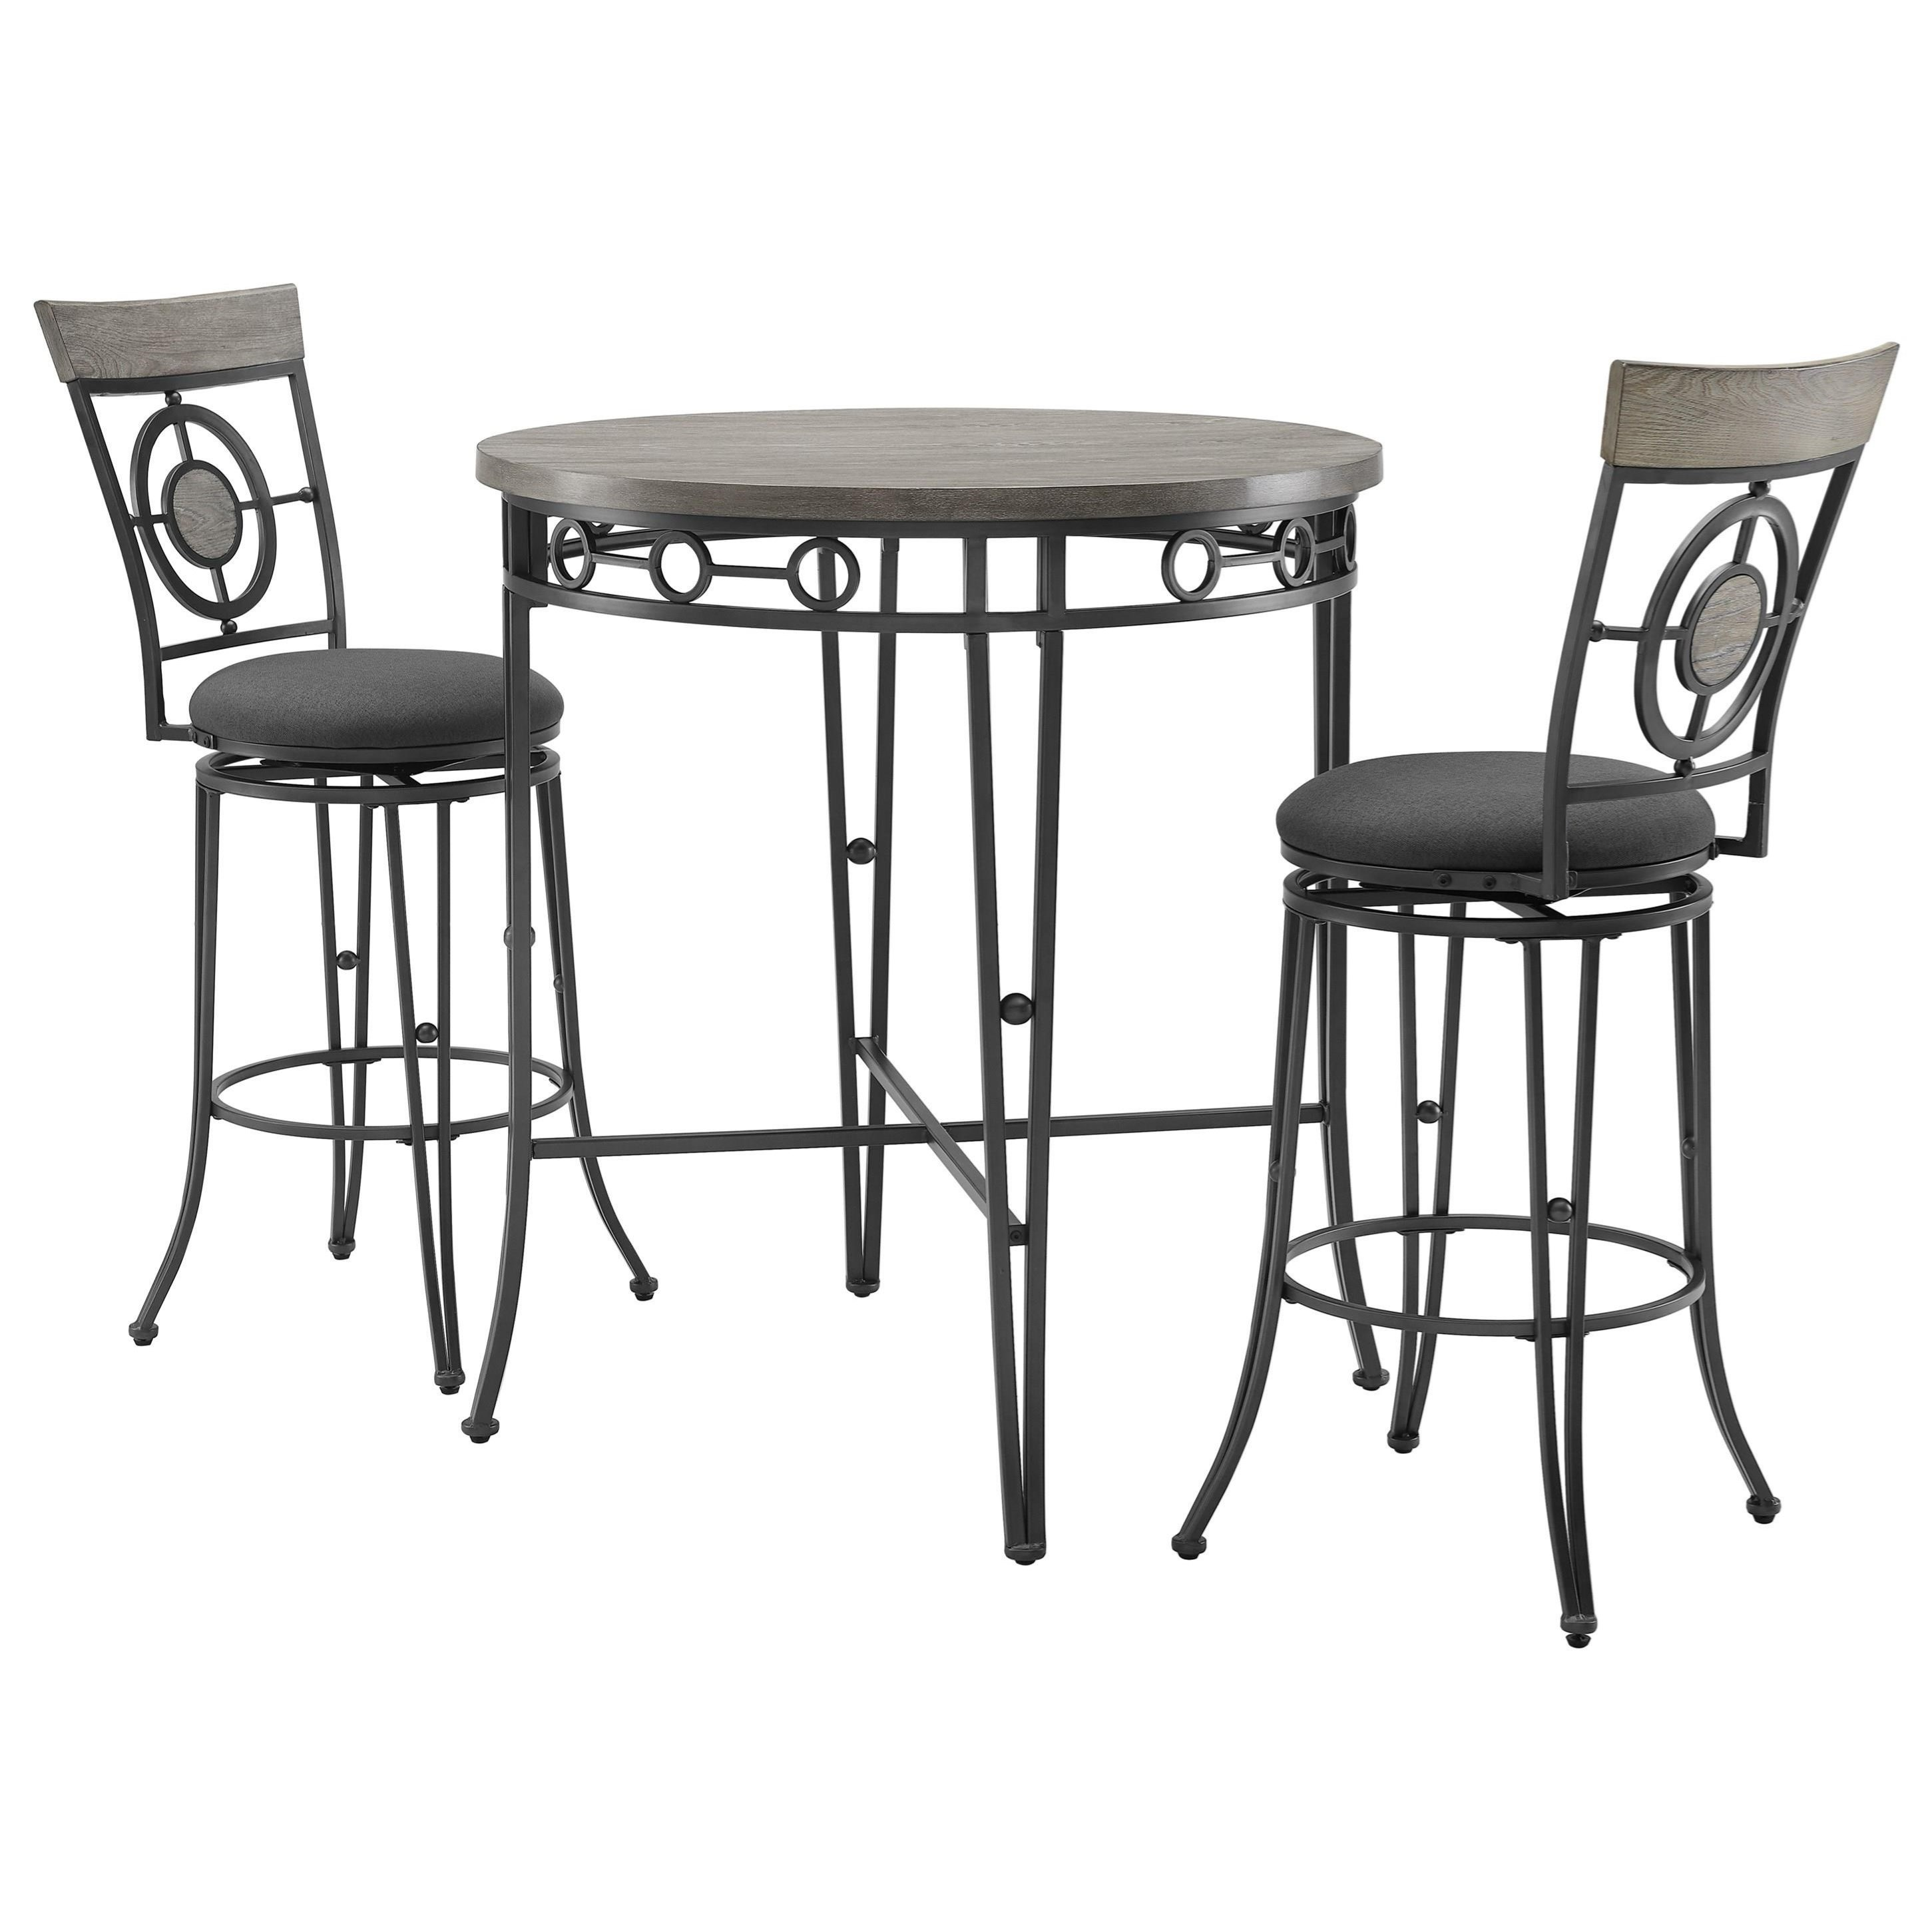 Barker 3-Piece Pub Table and Chair Set by Powell at Nassau Furniture and Mattress